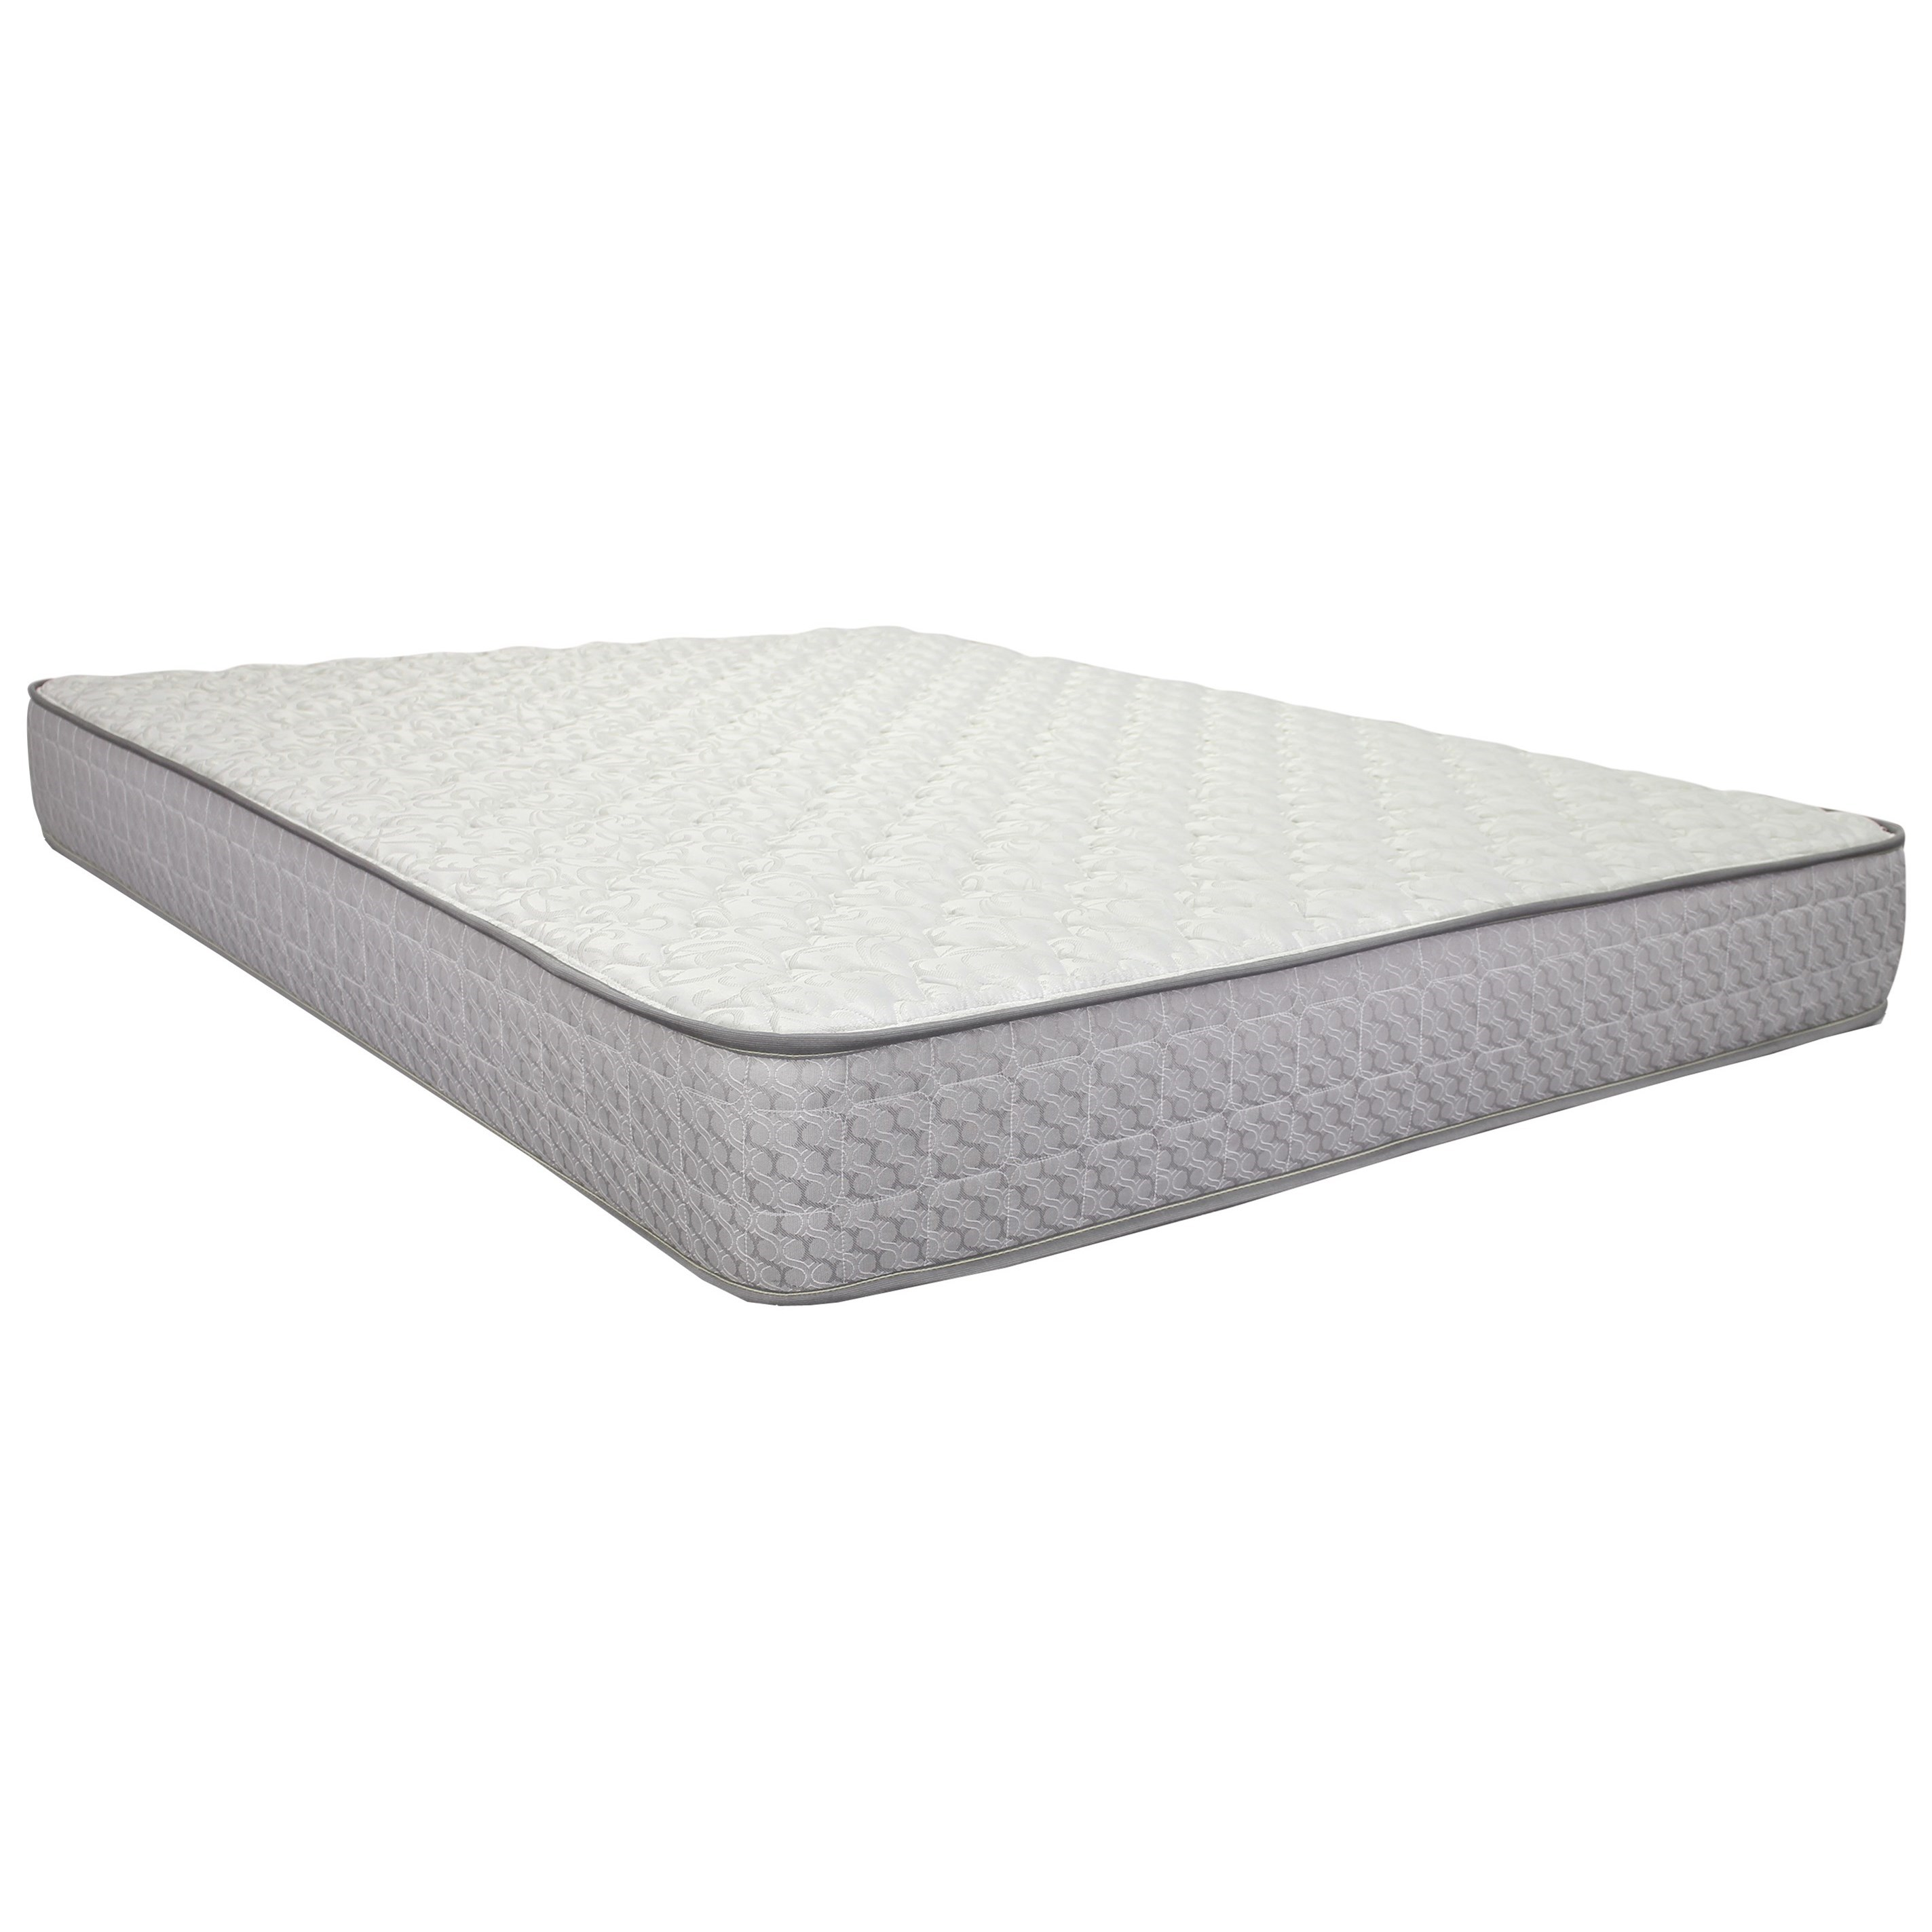 "Queen 9 1/2"" Firm Innerspring Mattress"